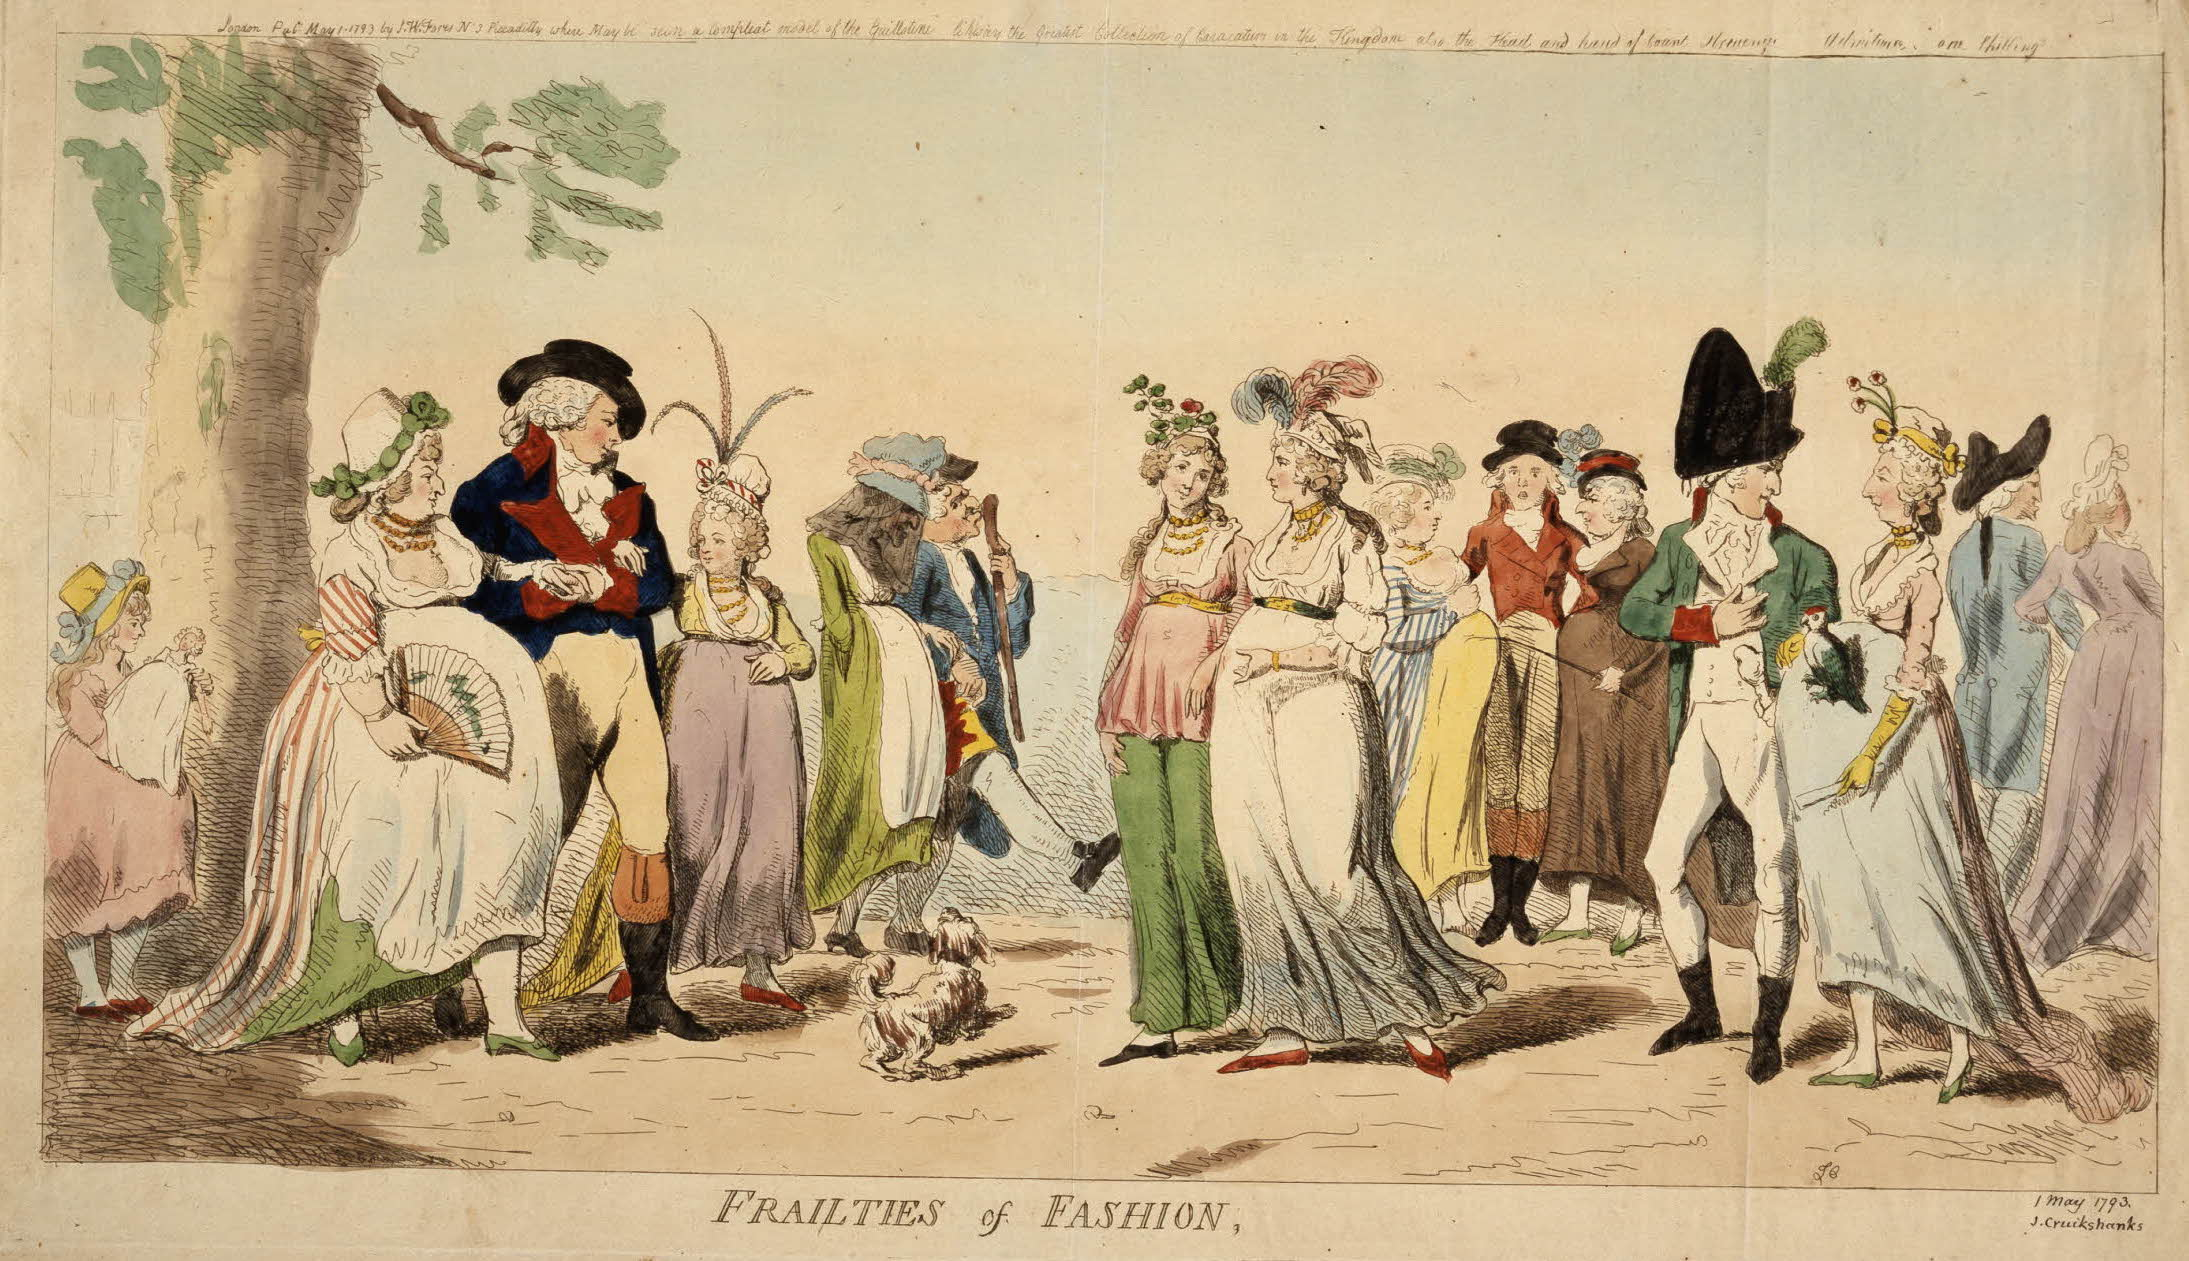 Isaac Cruikshank, Frailties of Fashion, 1793. Hand-colored etching, 299 x  518 mm. British Museum, London. © Trustees of the British Museum.